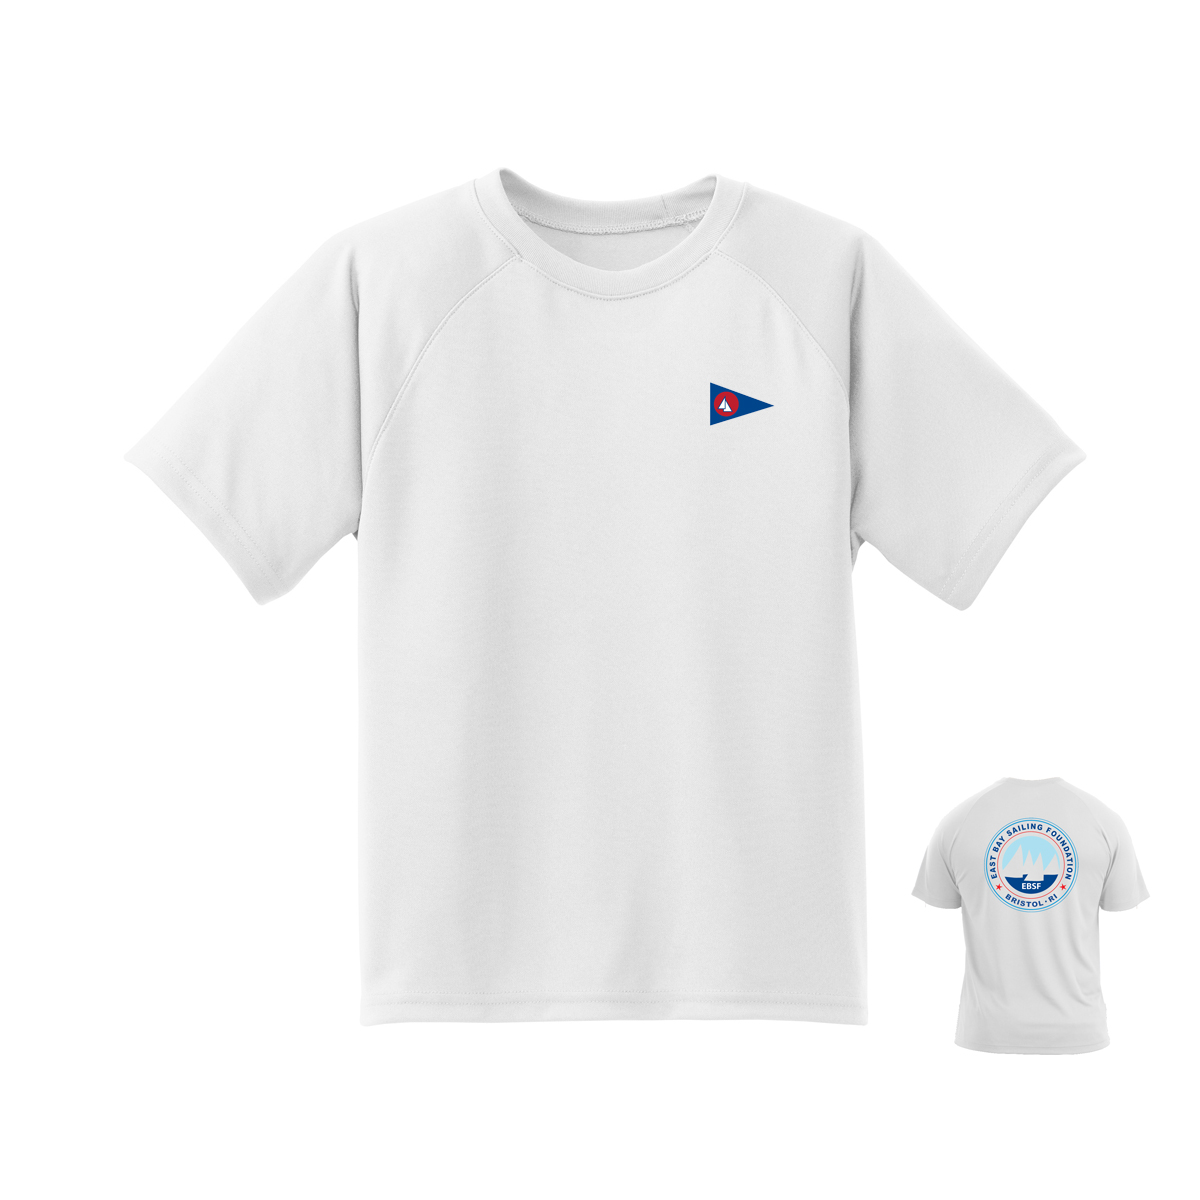 East Bay Sailing Foundation - Youth Short Sleeve Tech Tee